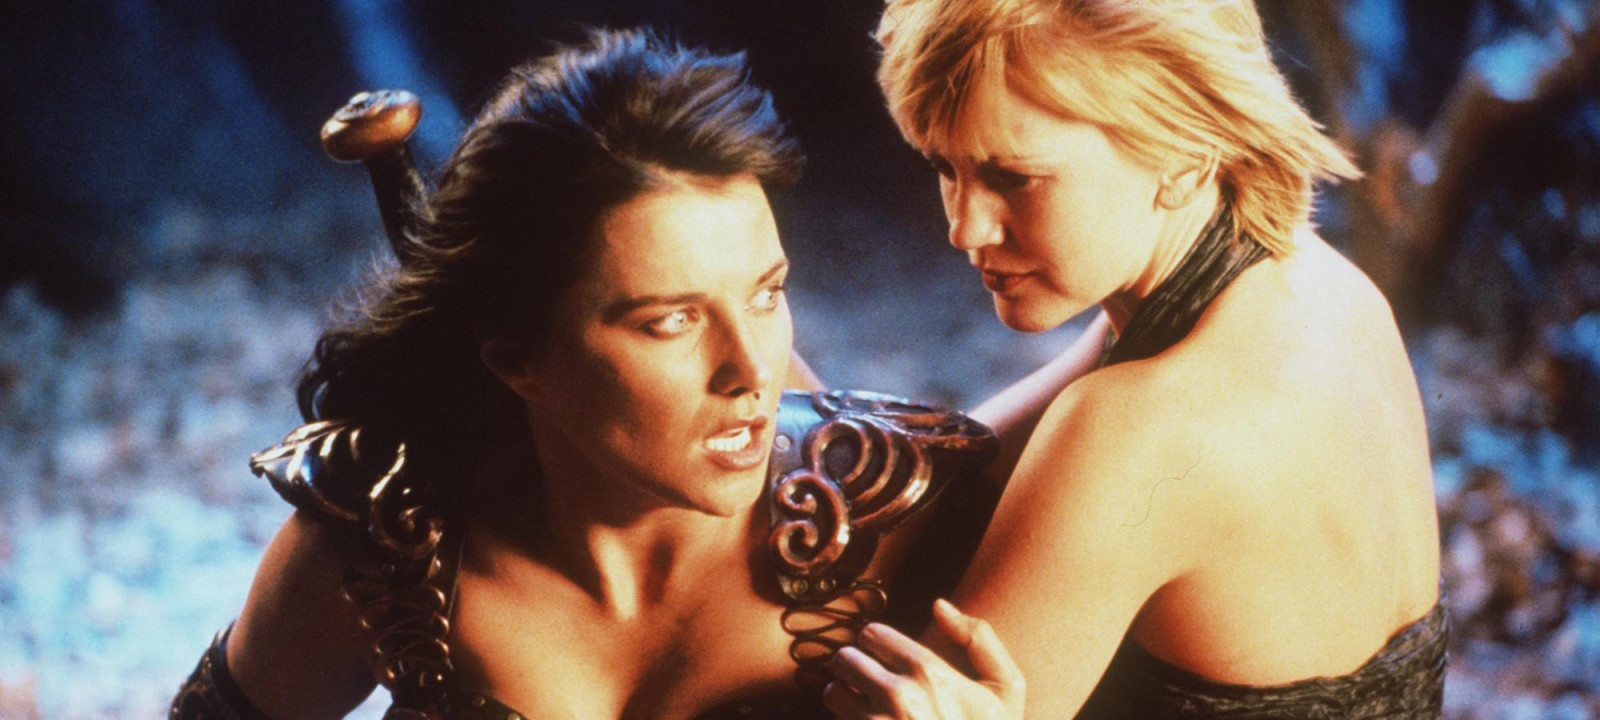 """Actress Lucy Lawless stars as Xena and Renee O'Connor stars as Gabrielle in Renaissance Pictures and Studio USA""""s syndicated television series """"Xena Warrior Princess."""""""